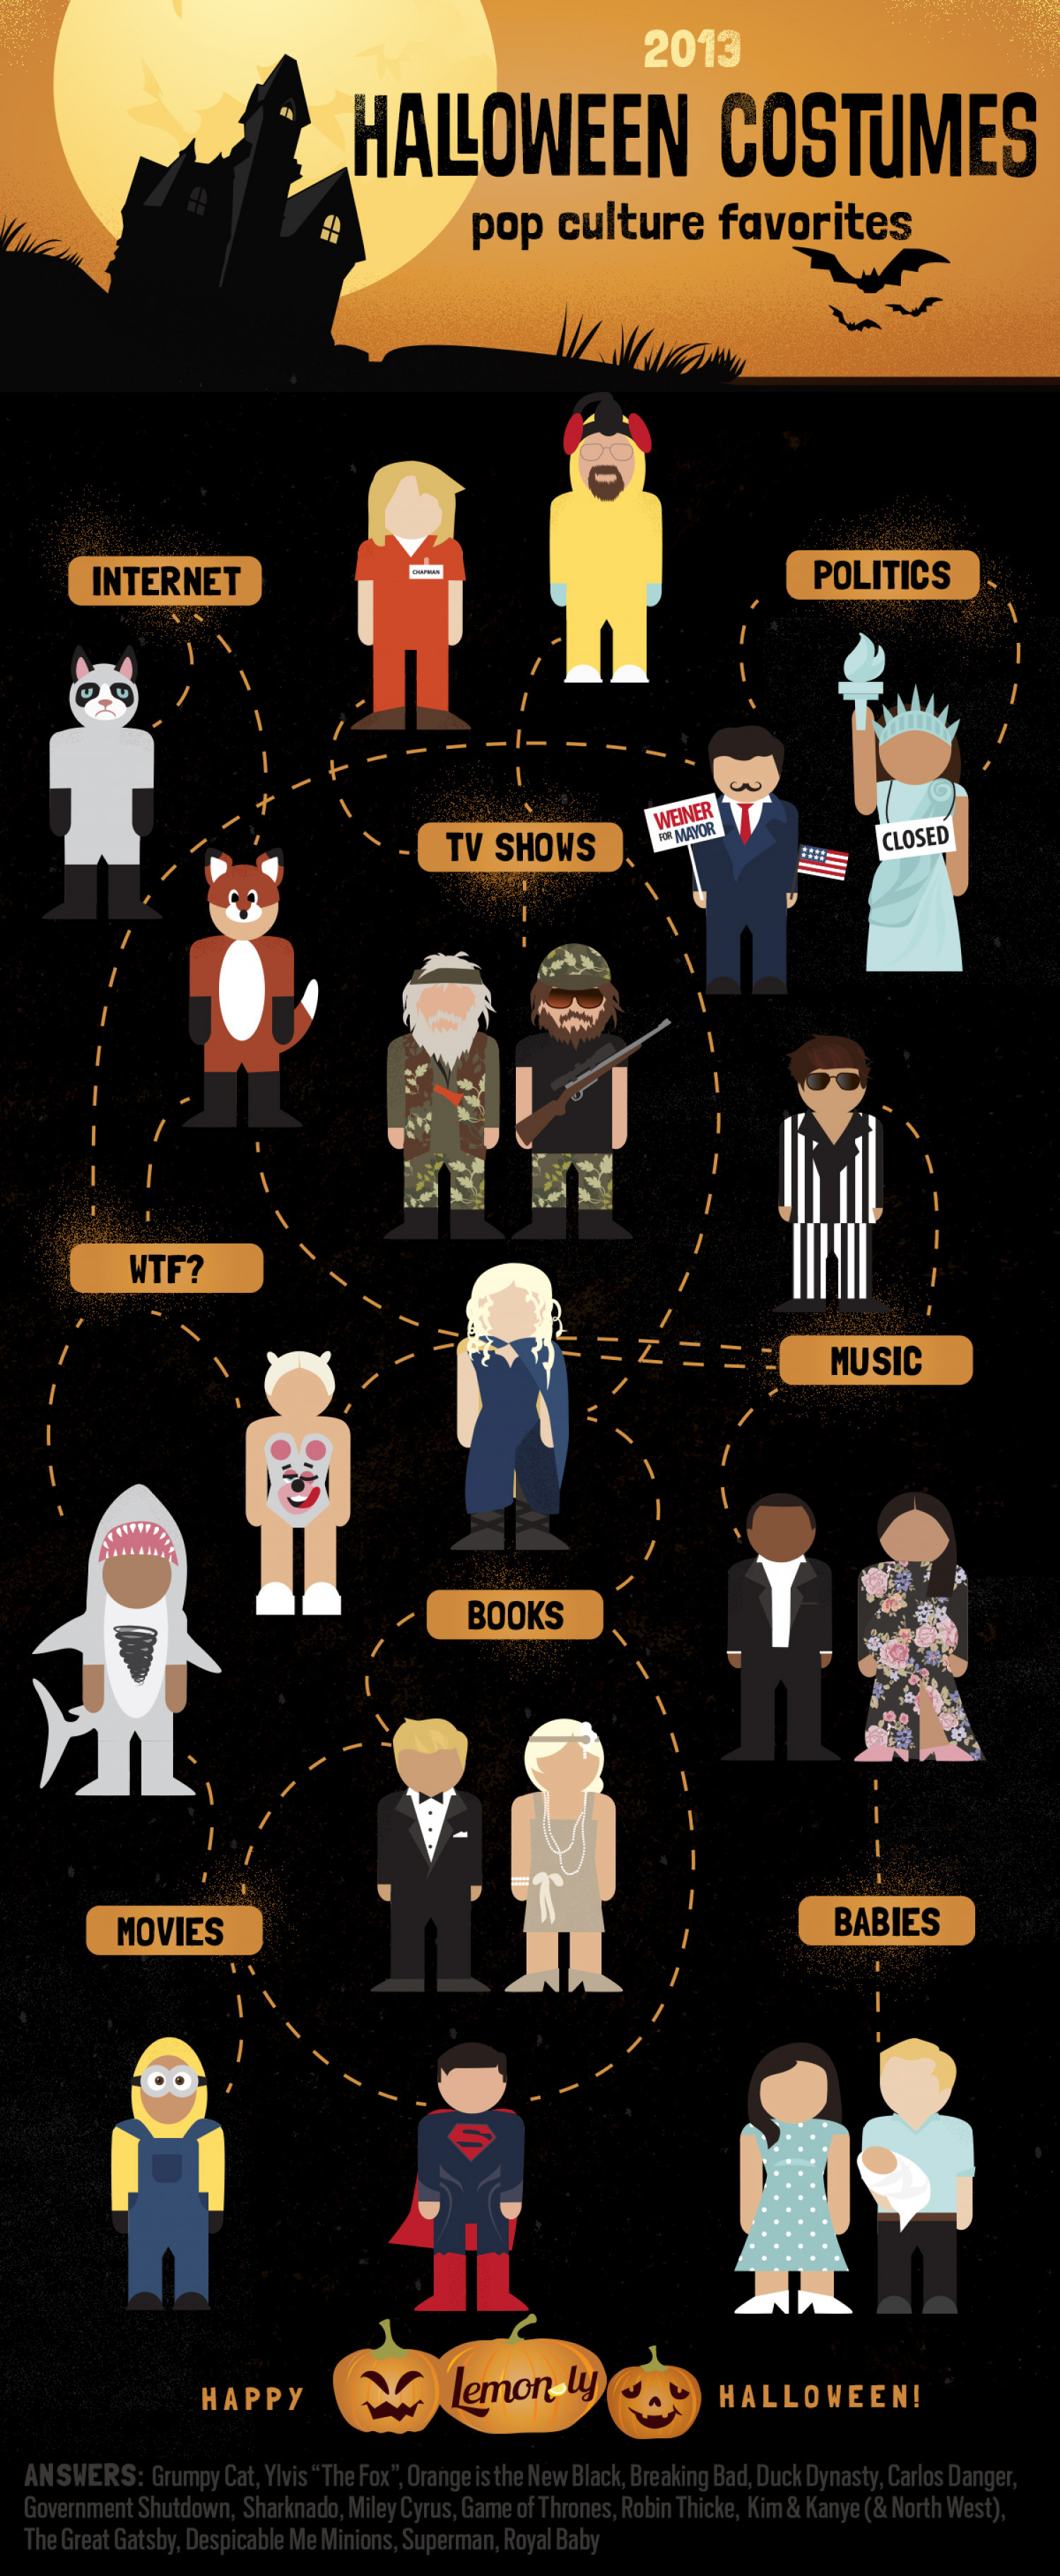 2013 Halloween Costumes: Pop Culture Favorites Infographic